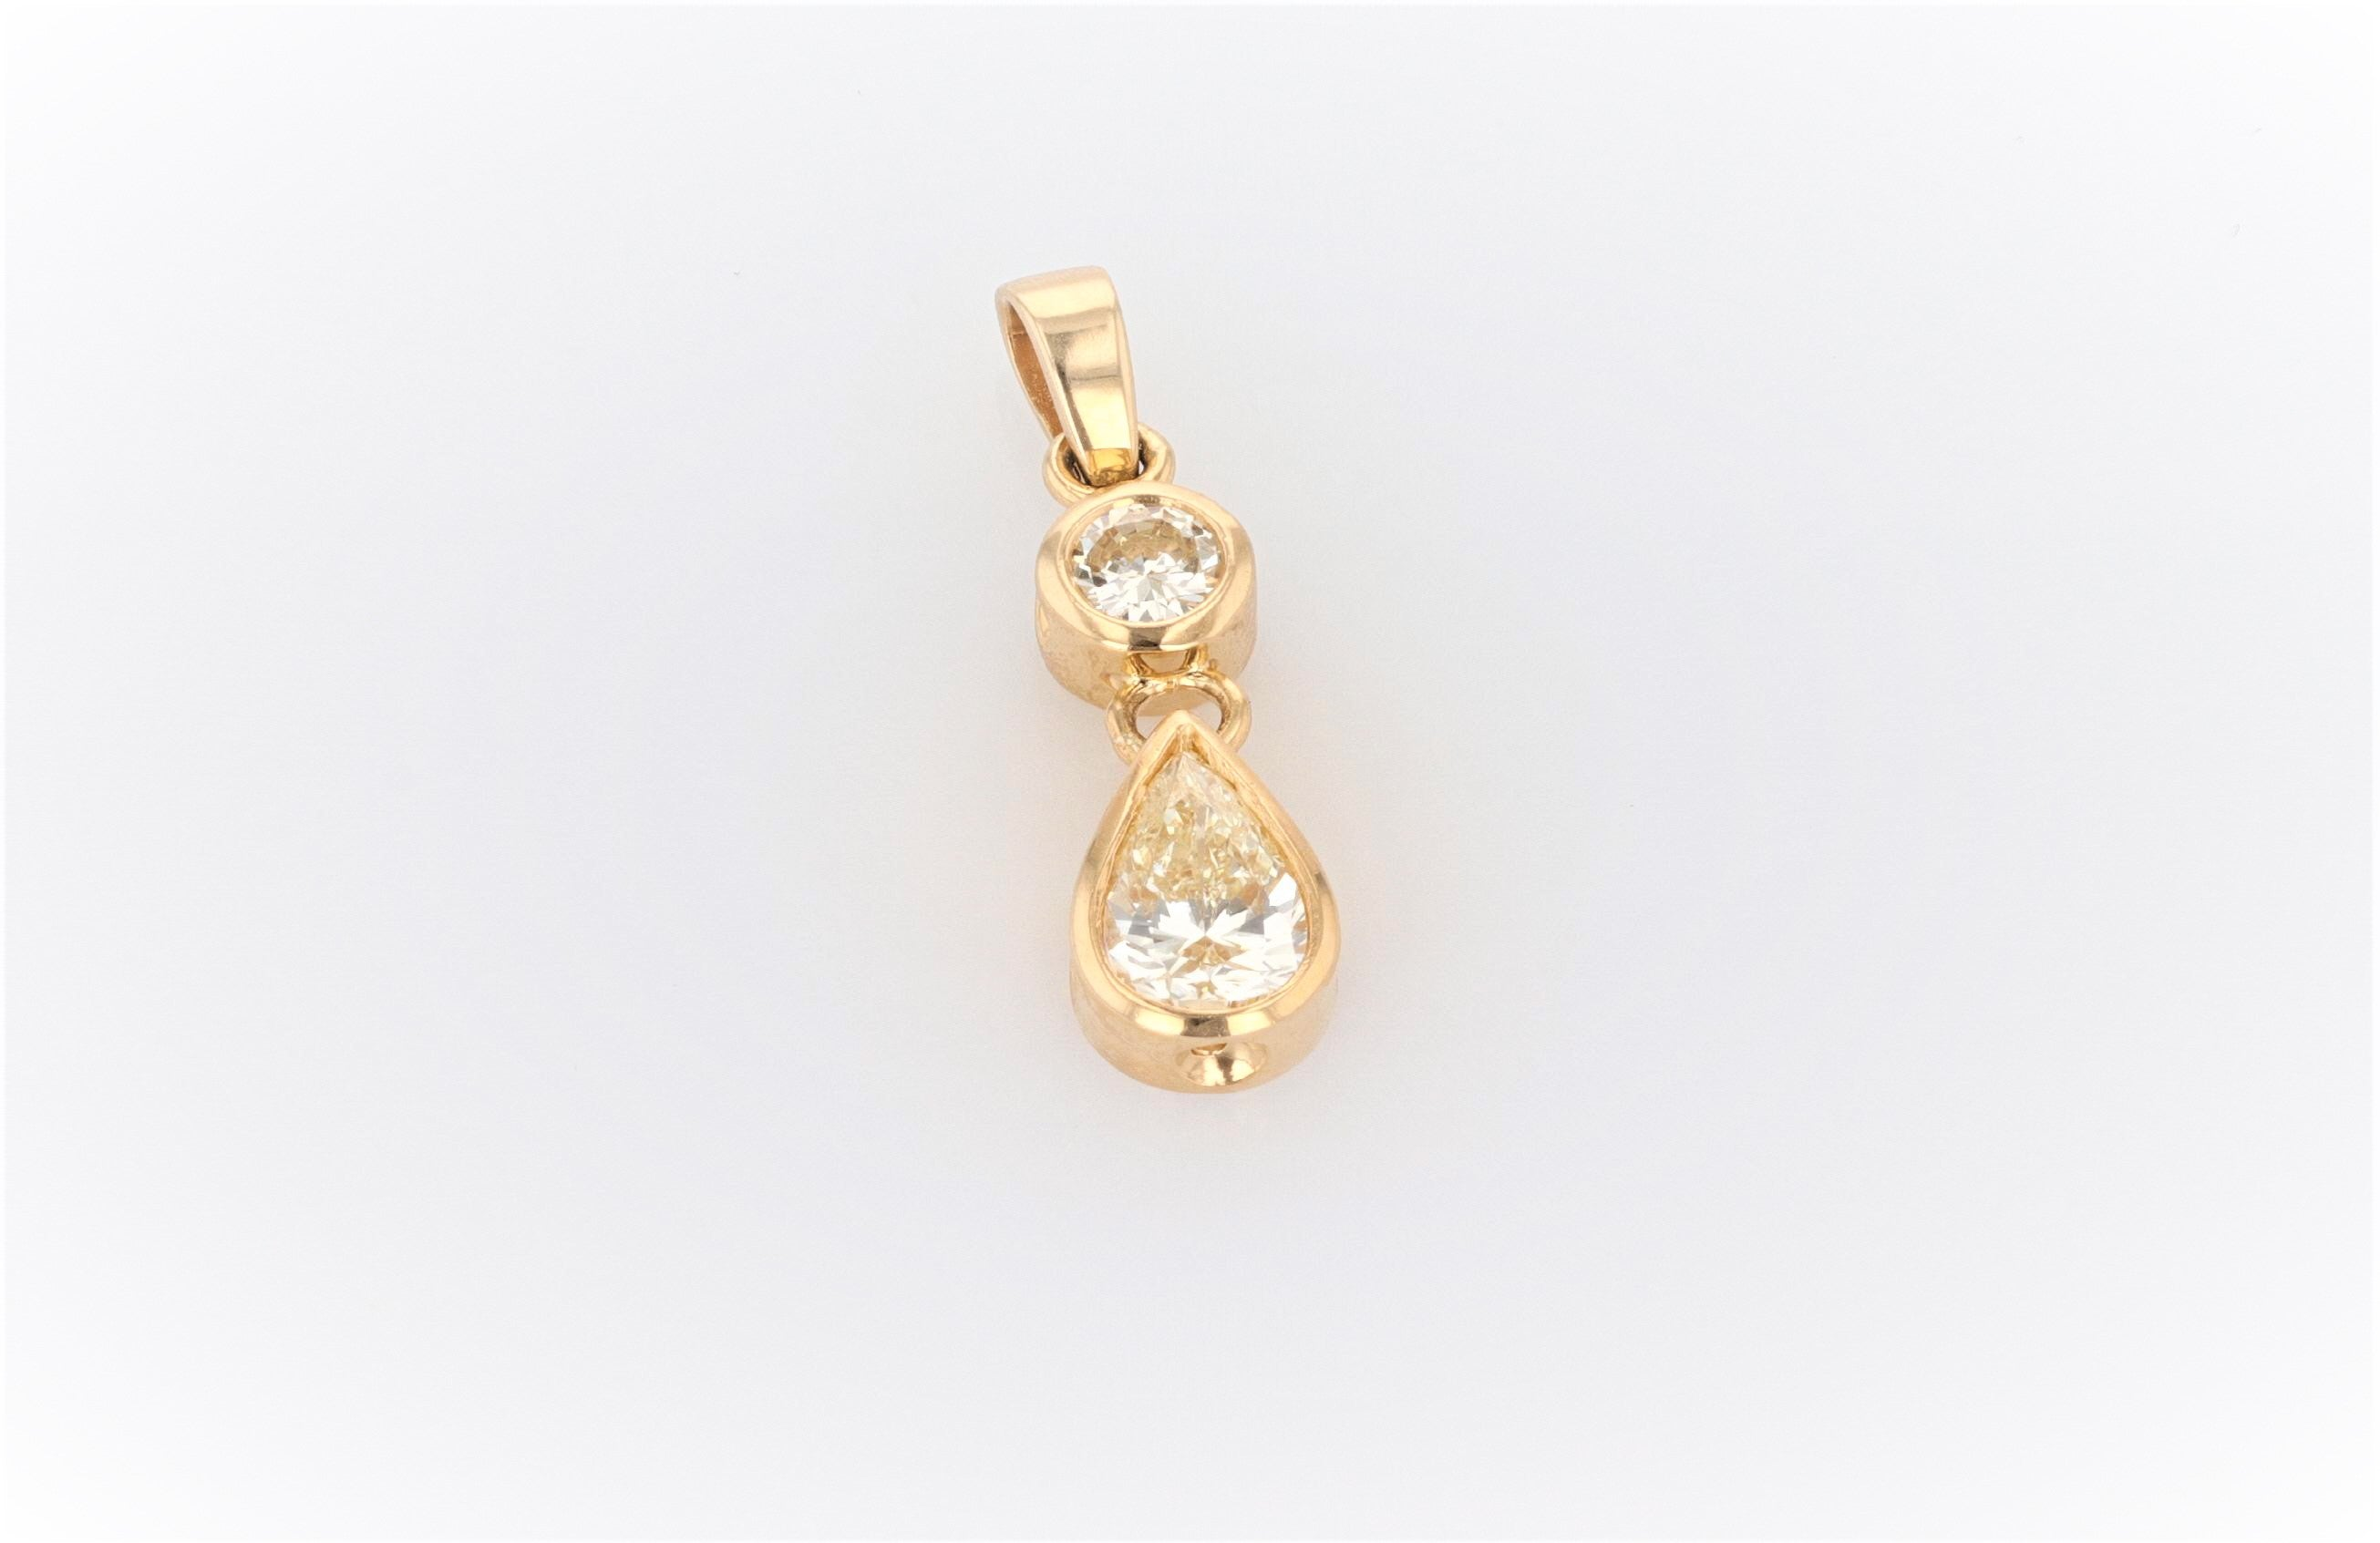 18K Women's Yellow Gold (Stamped) Dress Drop Pendant